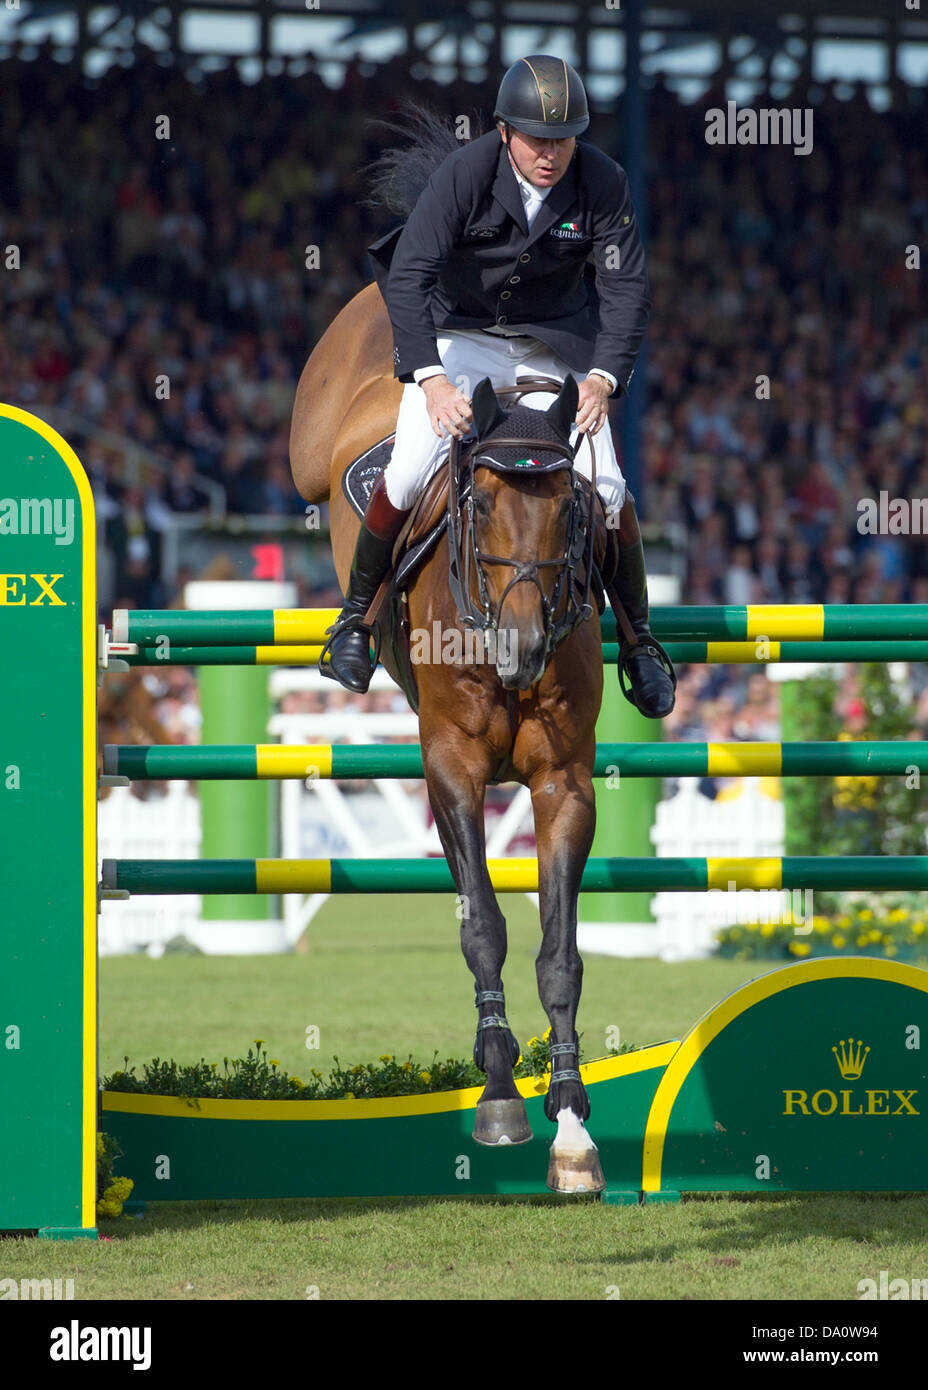 SHIRES BLENHEIM Chasseur Muserolle cavesson